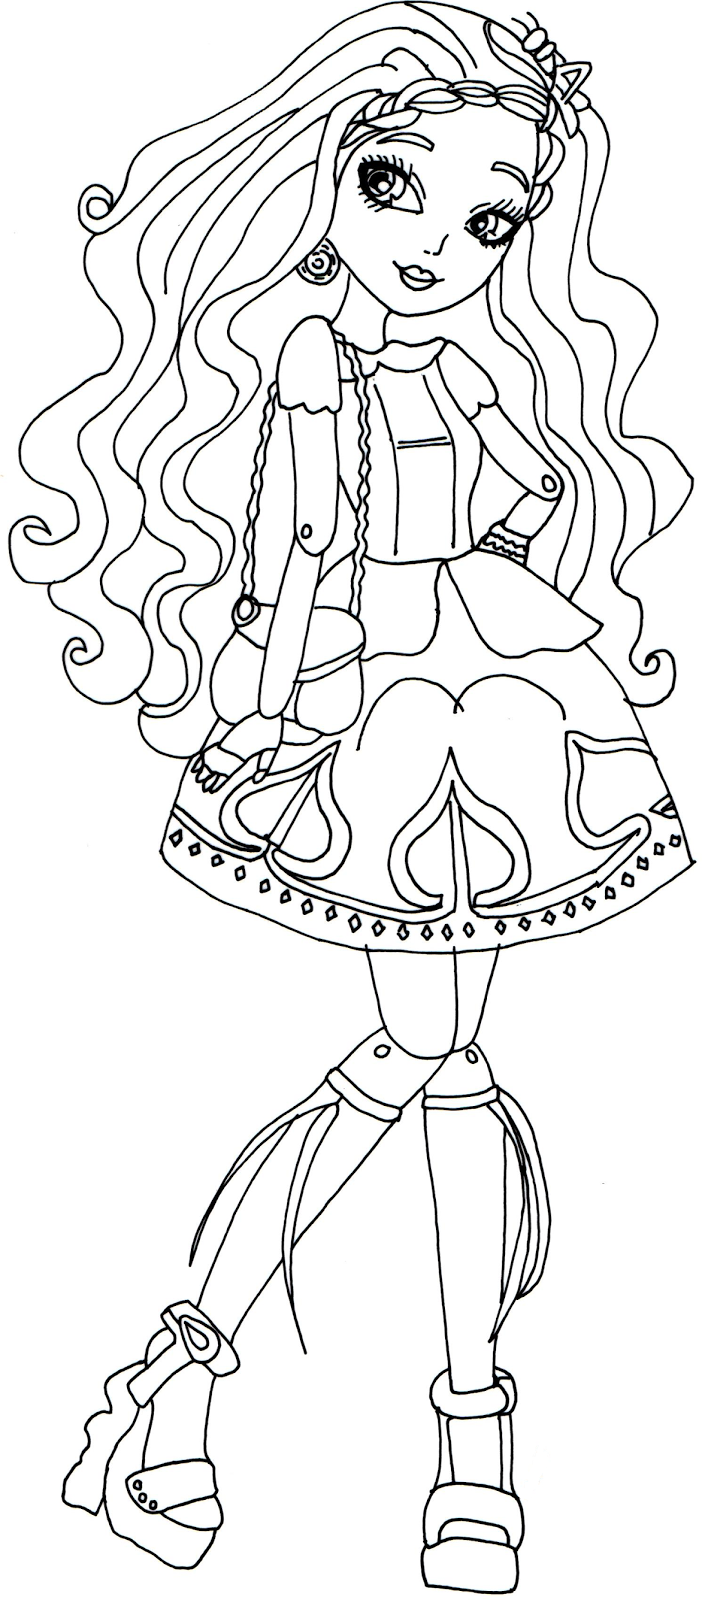 Printable coloring pages ever after high - Free Printable Ever After High Coloring Pages Cedar Wood Ever After High Coloring Page